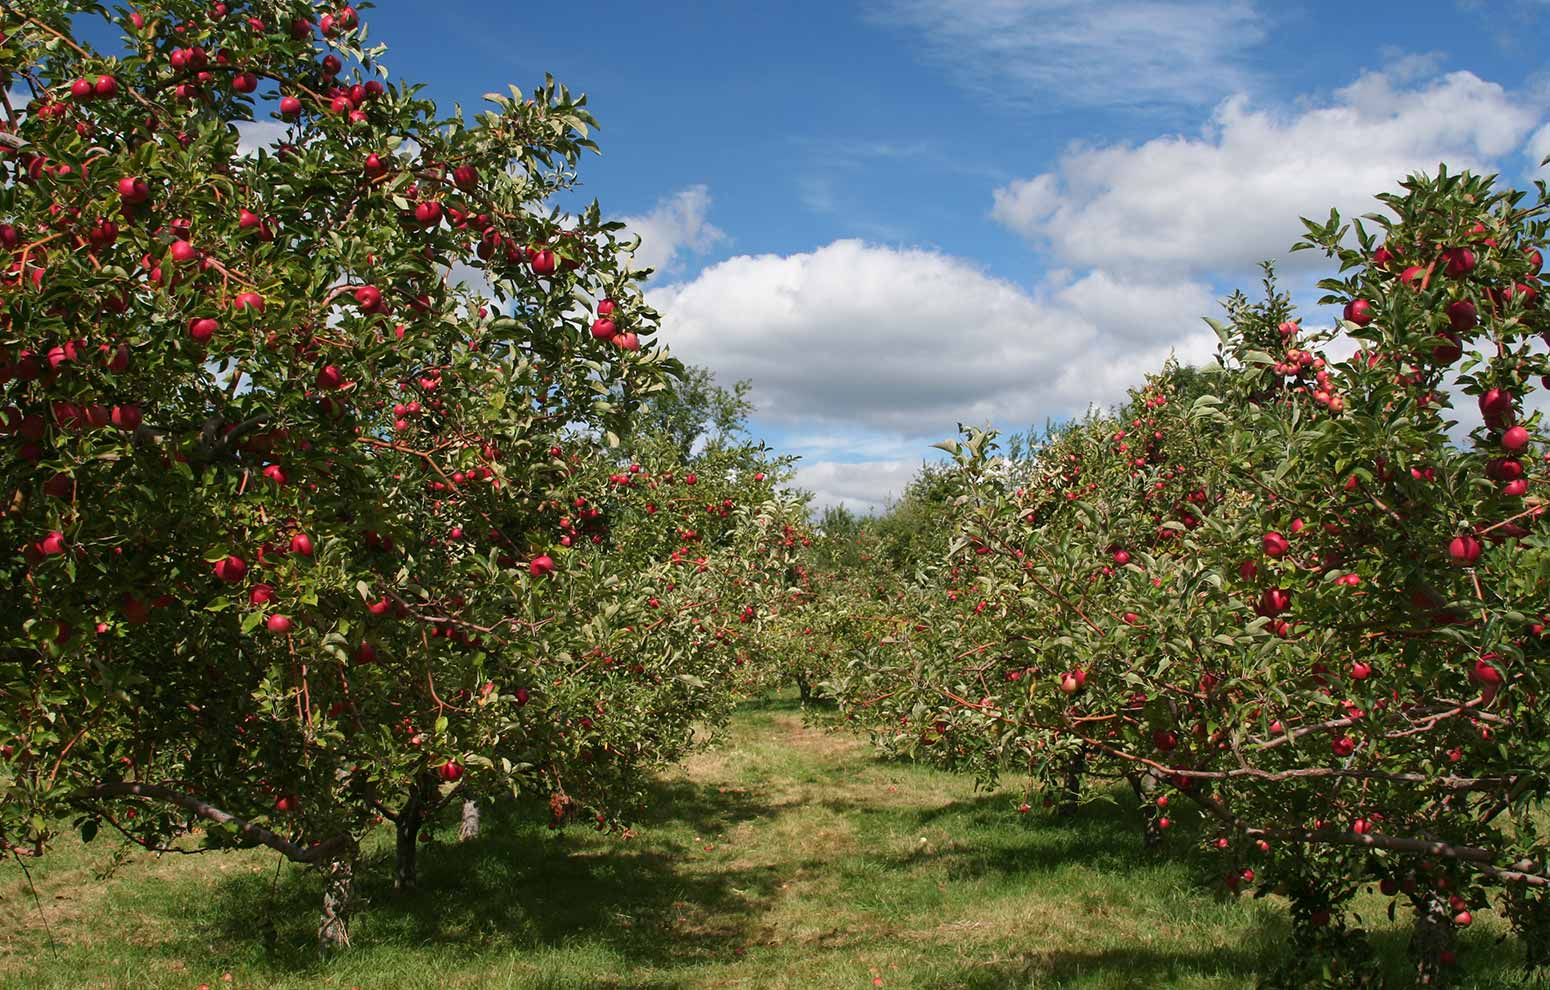 Apple orchard rows of trees full of ripe fruit